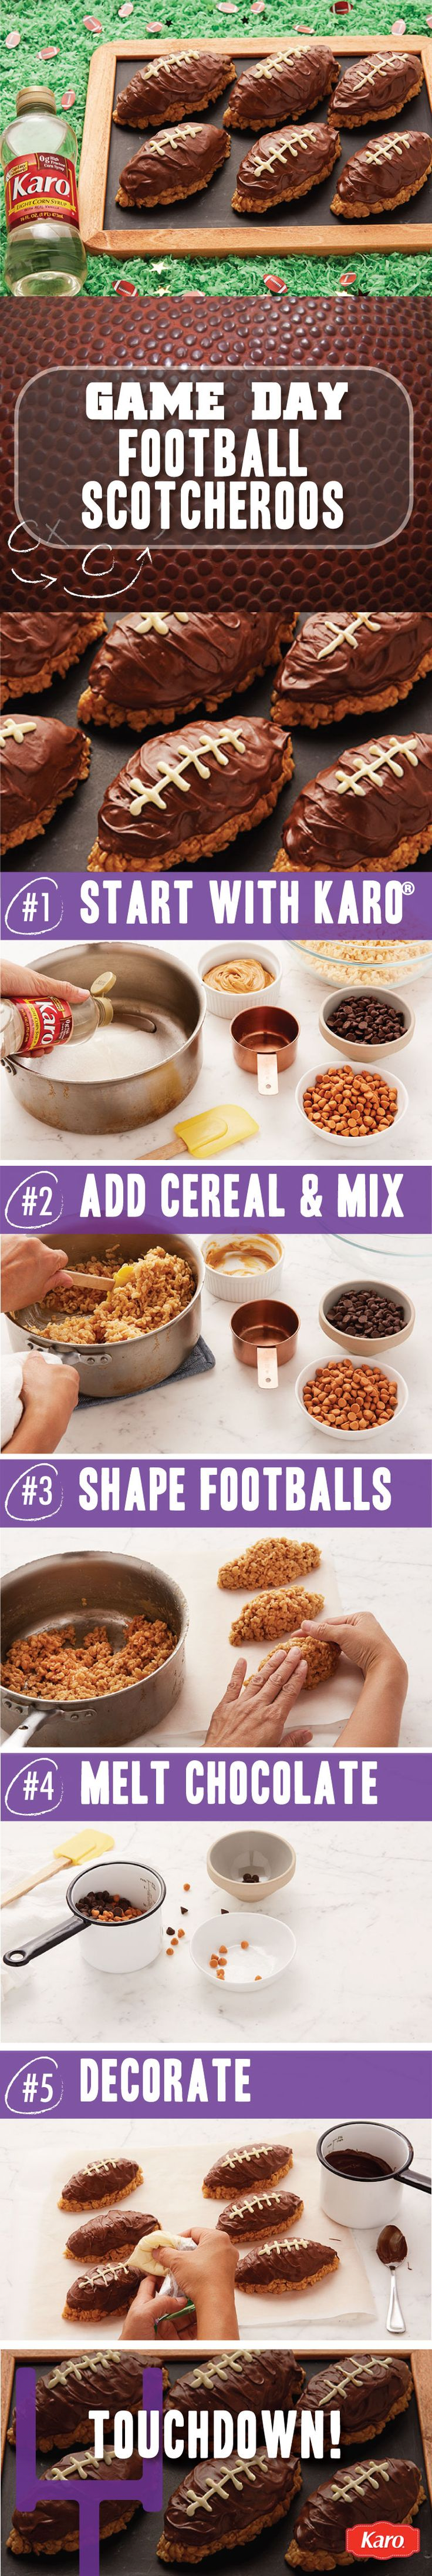 Football Scotcheroos are a must have at your next game day party. This no-bake…